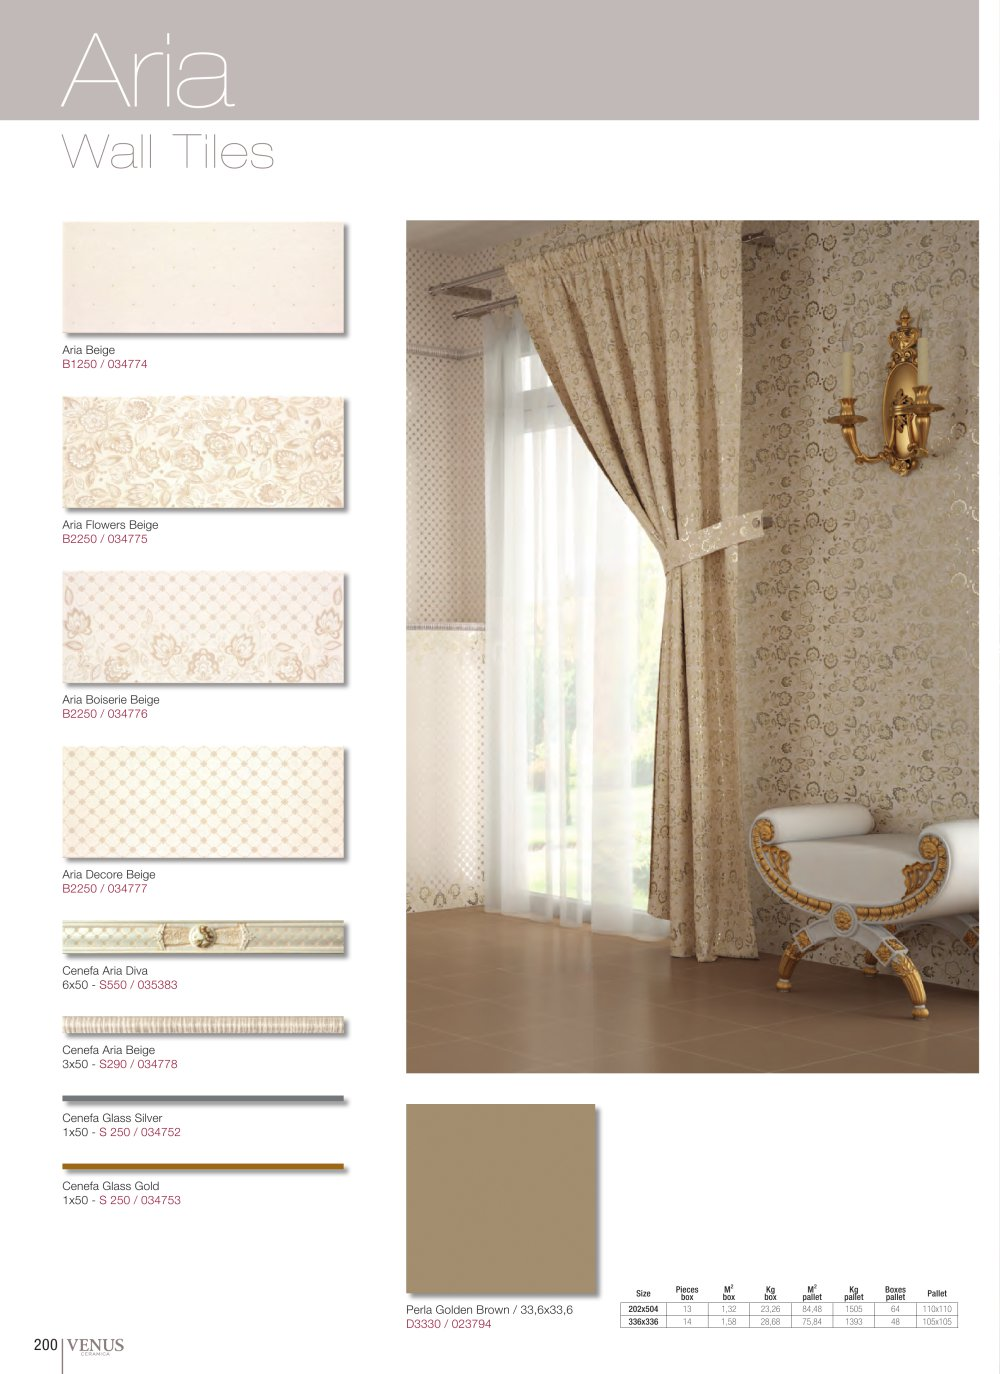 Aria venus ceramica pdf catalogues documentation brochures aria 1 2 pages dailygadgetfo Gallery